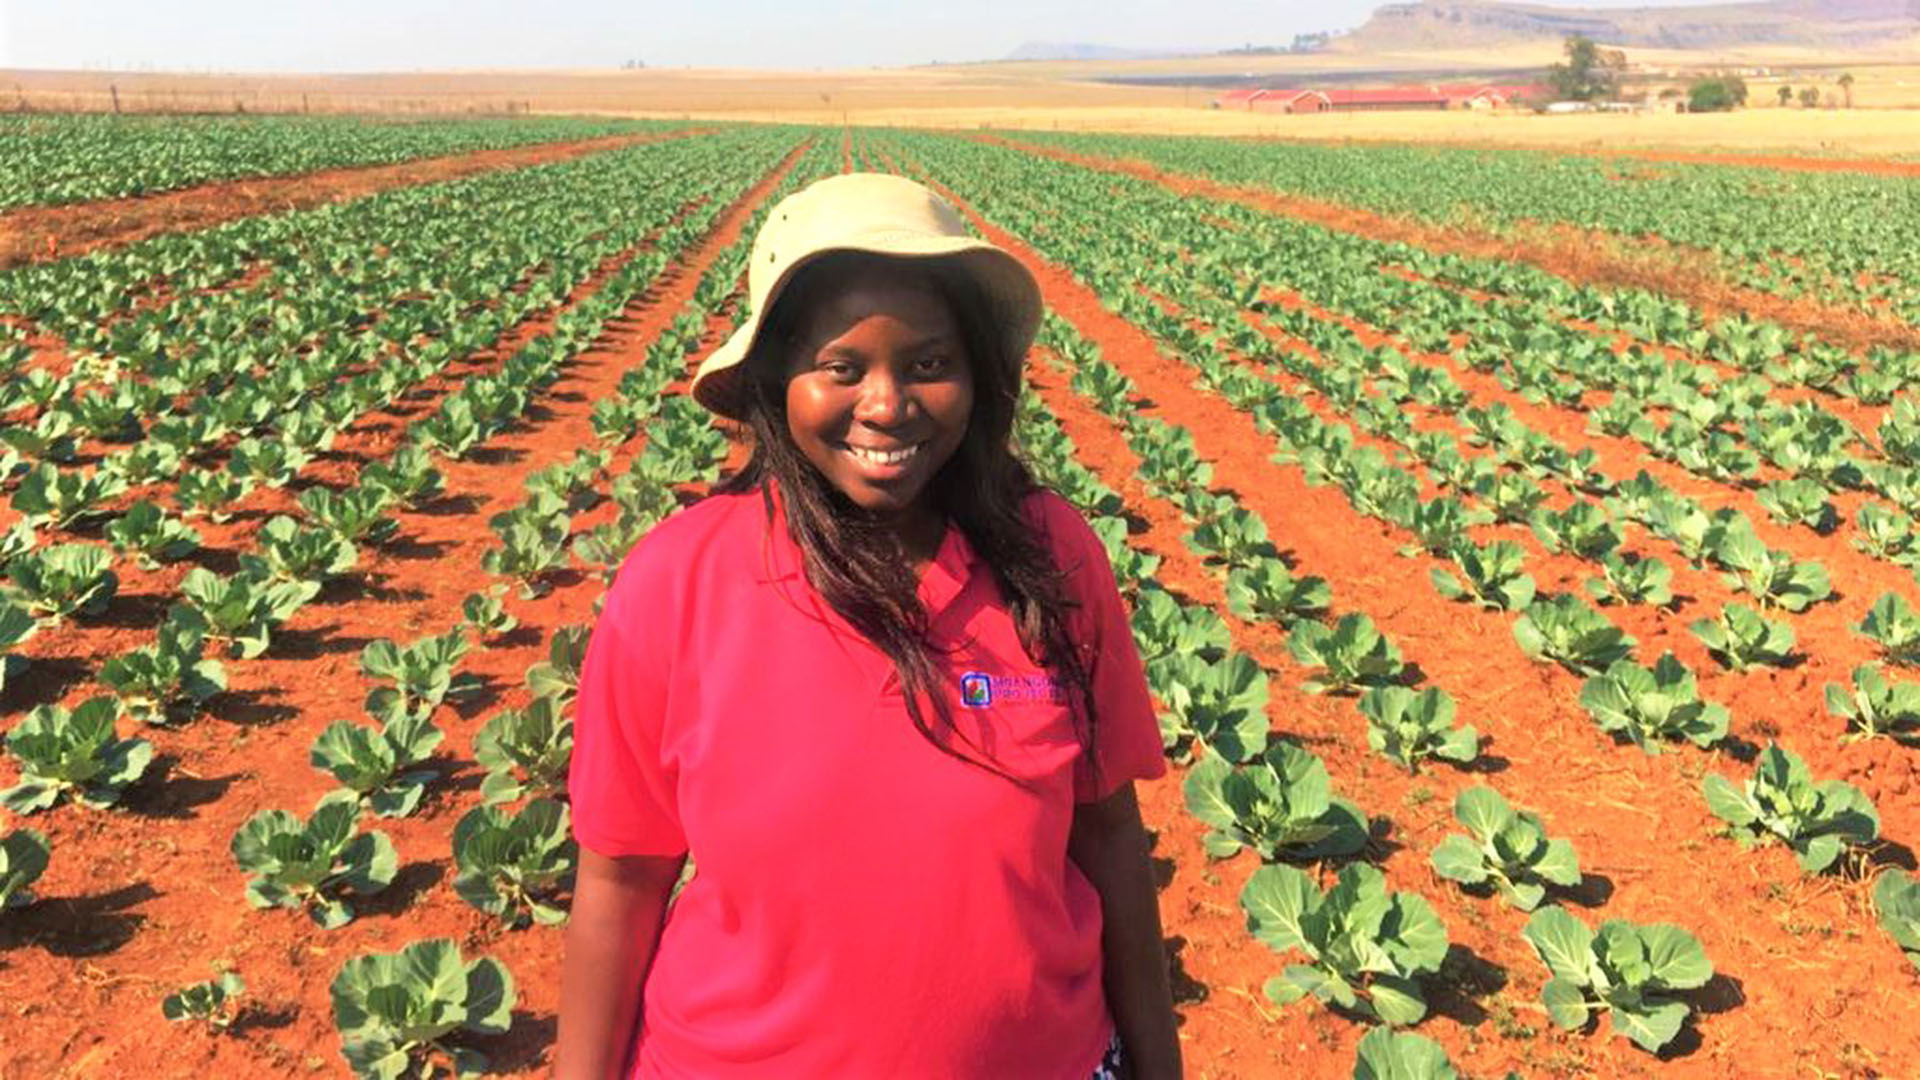 Ayanda Ntshangase is as go-getter as it gets. Mere months after putting her first crops in the ground, she is not only supplying some of the biggest retail names in Mzansi, but already aiming for exports as well. Photo: Supplied/Food For Mzansi